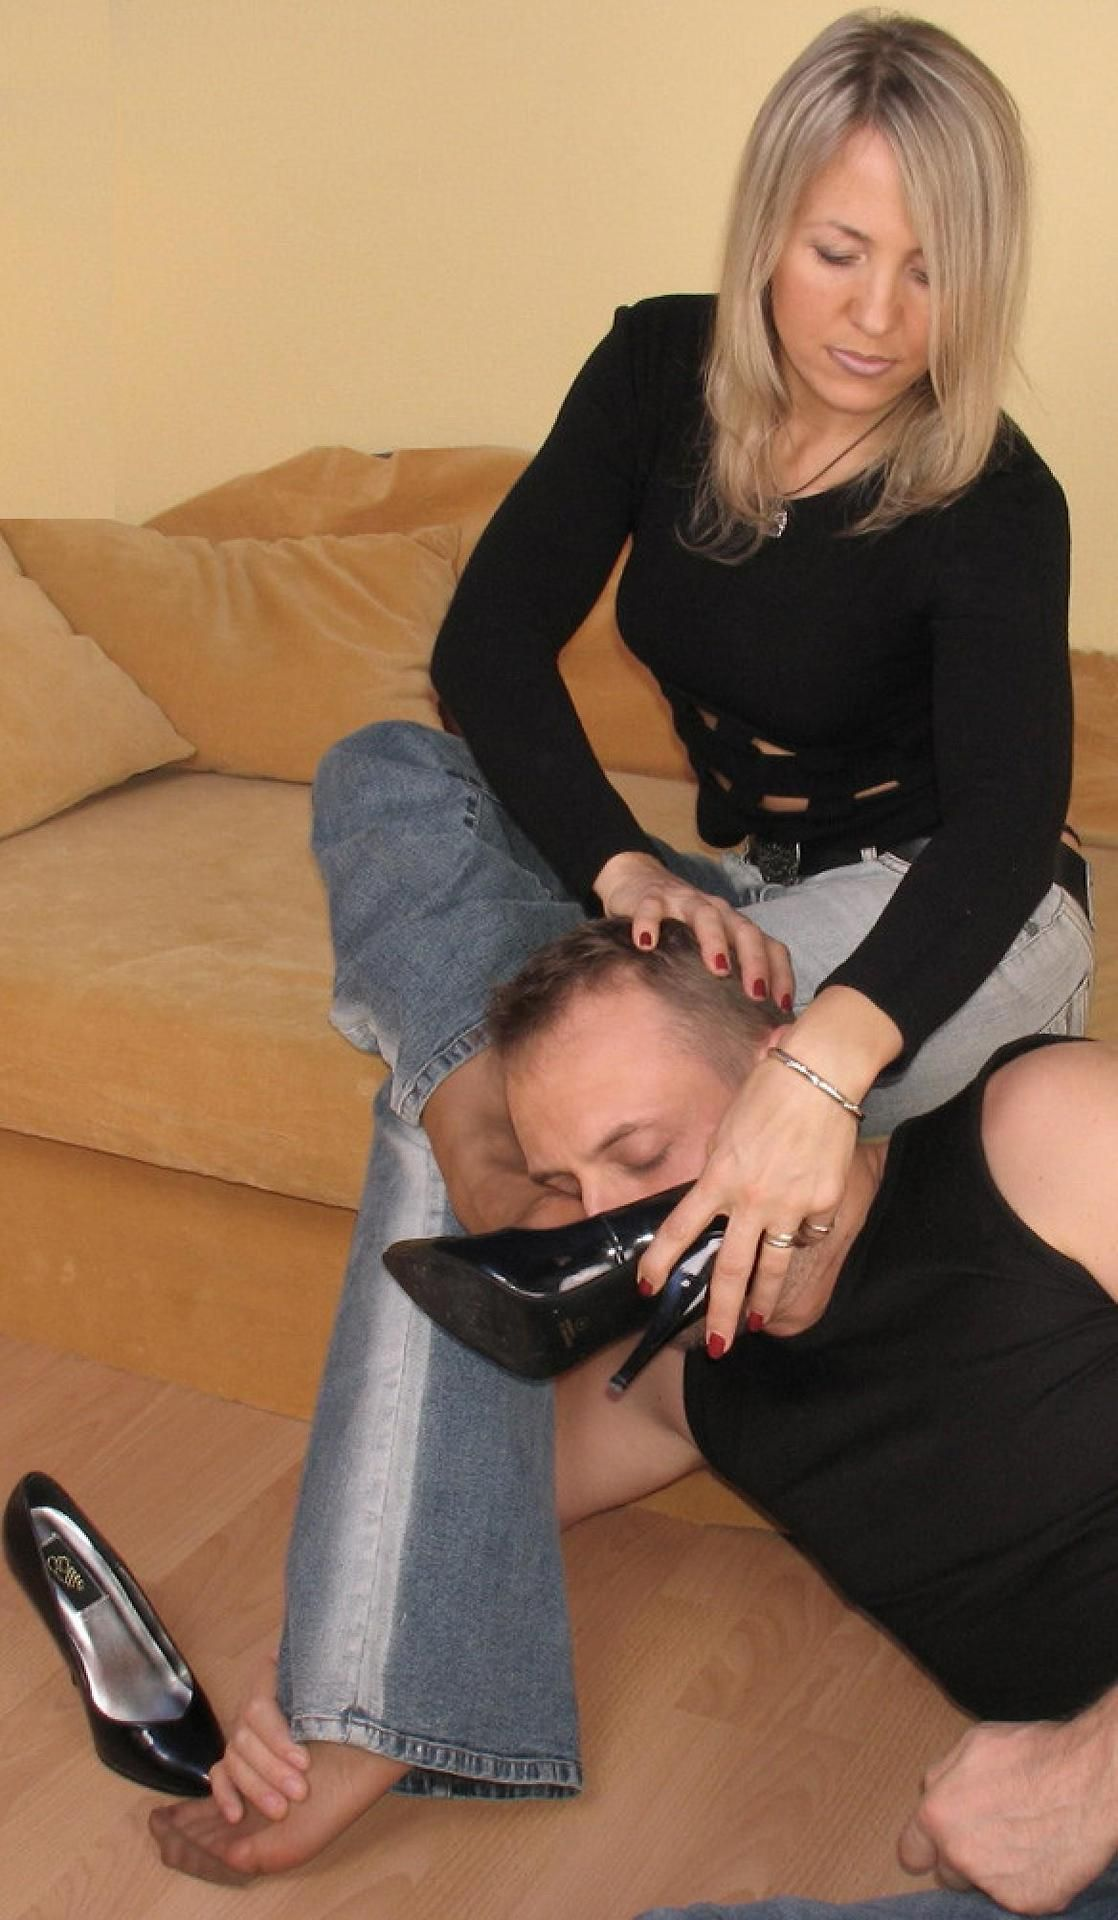 Female domination why-4626